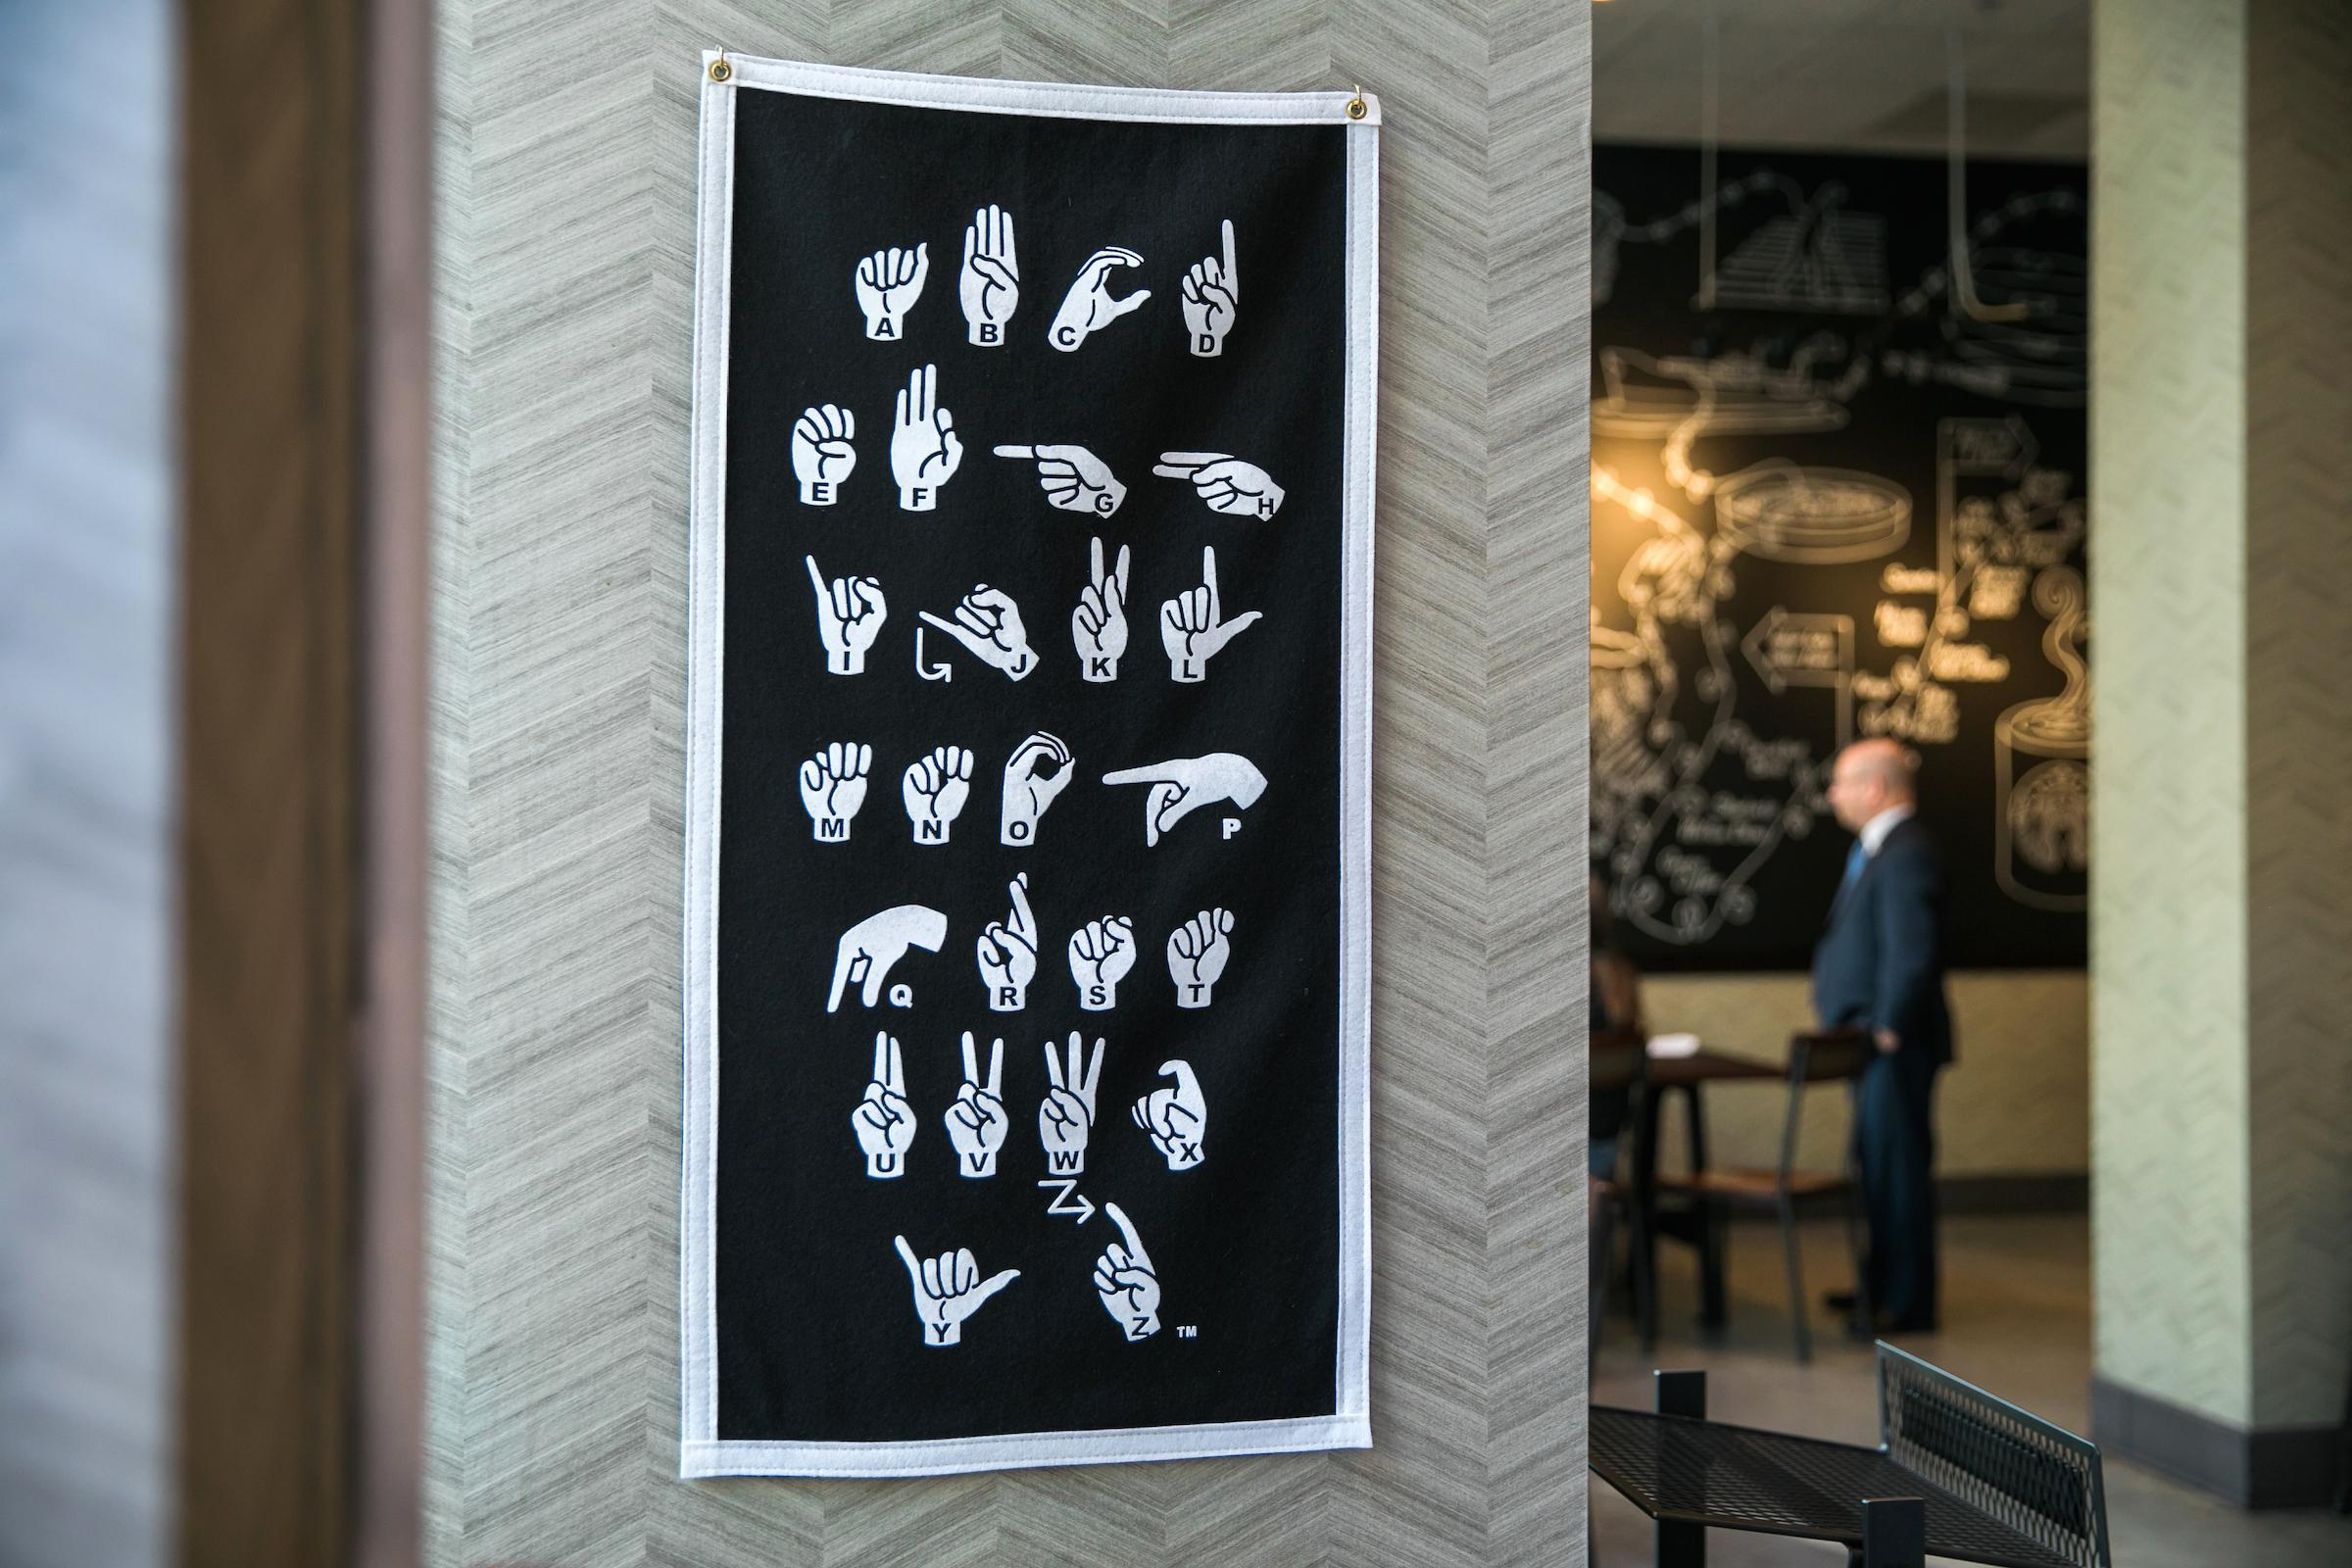 The store will feature &quot;sign of the week&quot; lessons to encourage patrons to learn a little ASL. (Image: Joshua Trujillo, Starbucks)<p></p>